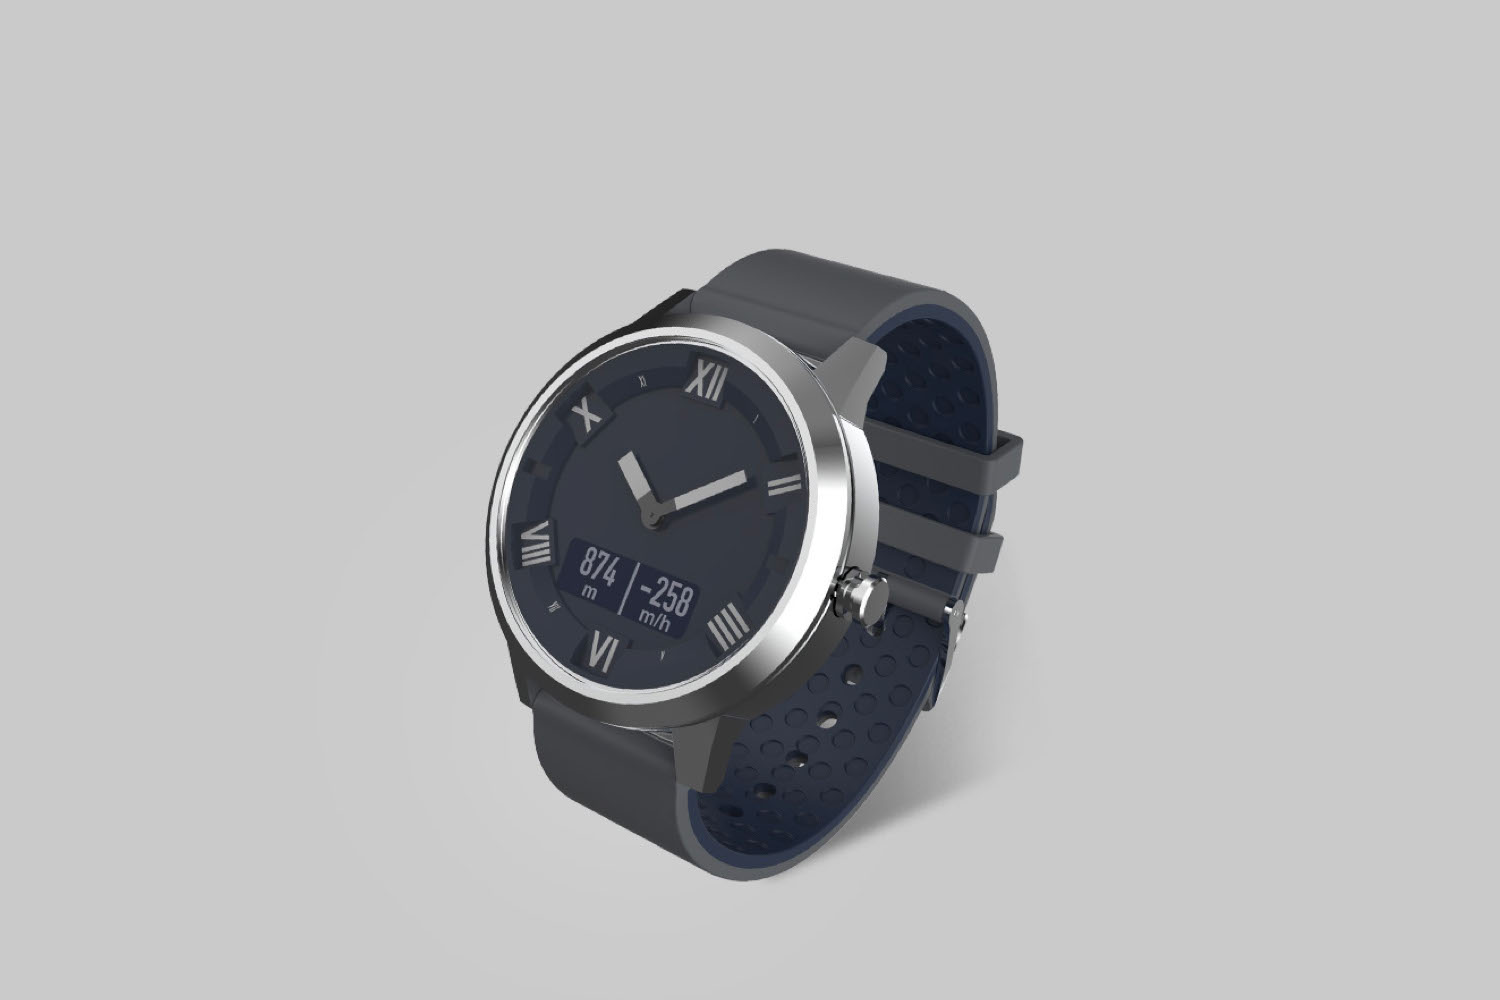 Lenovo Watch X Was Riddled With Security Bugs Researcher Says